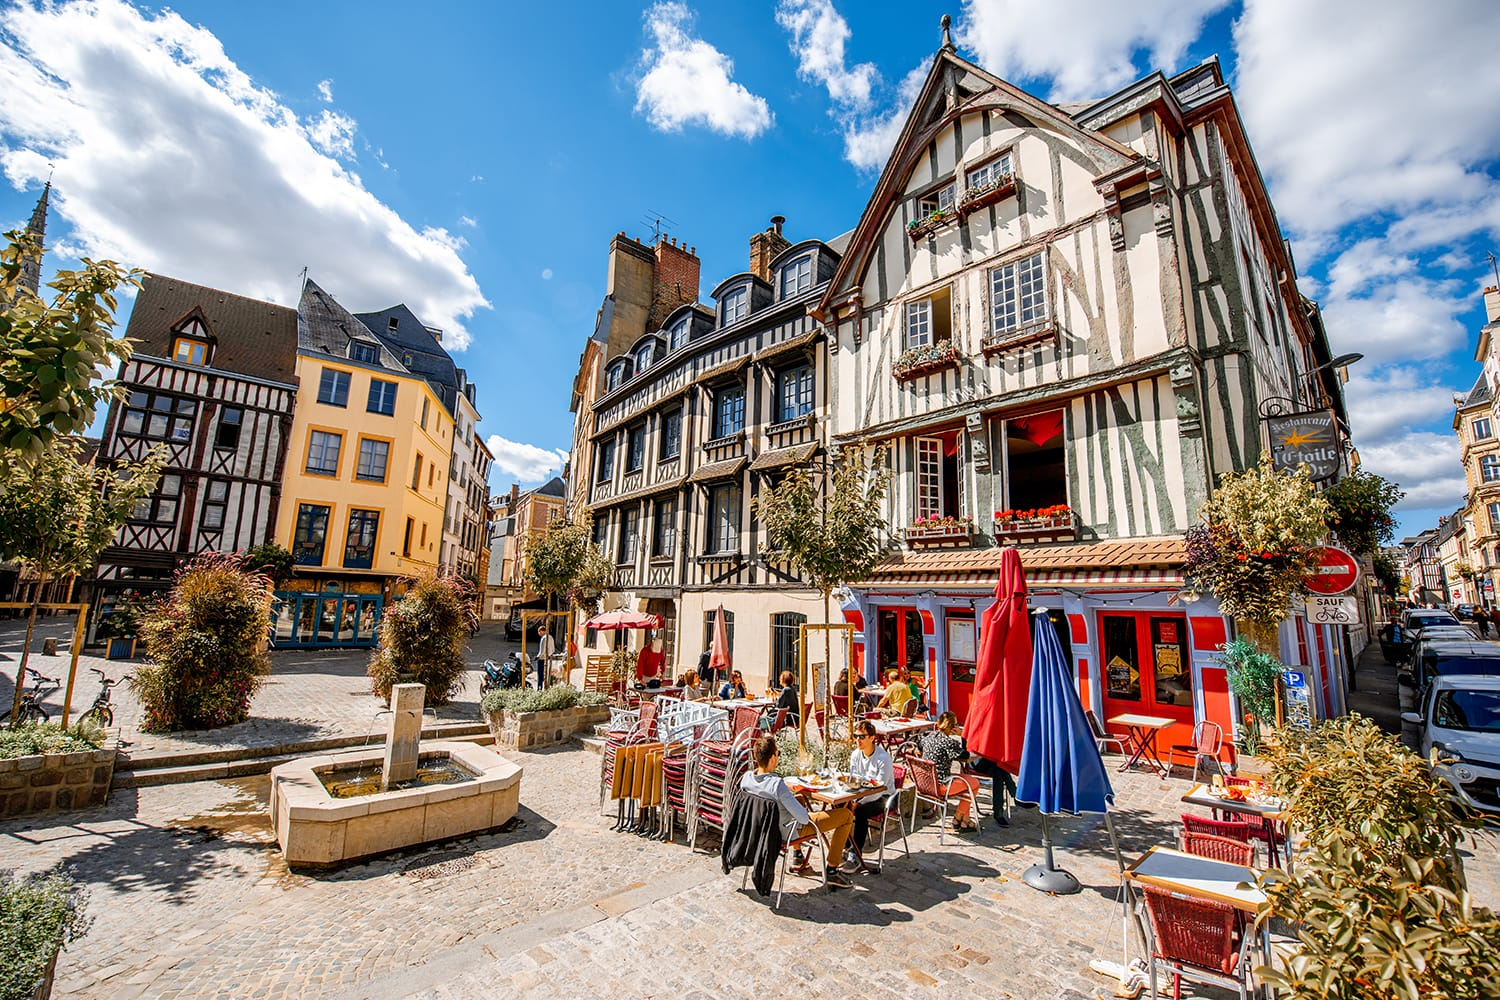 Street view with beautiful half-timbered houses in the old town of Rouen city, the capital of Nrmandy region in France